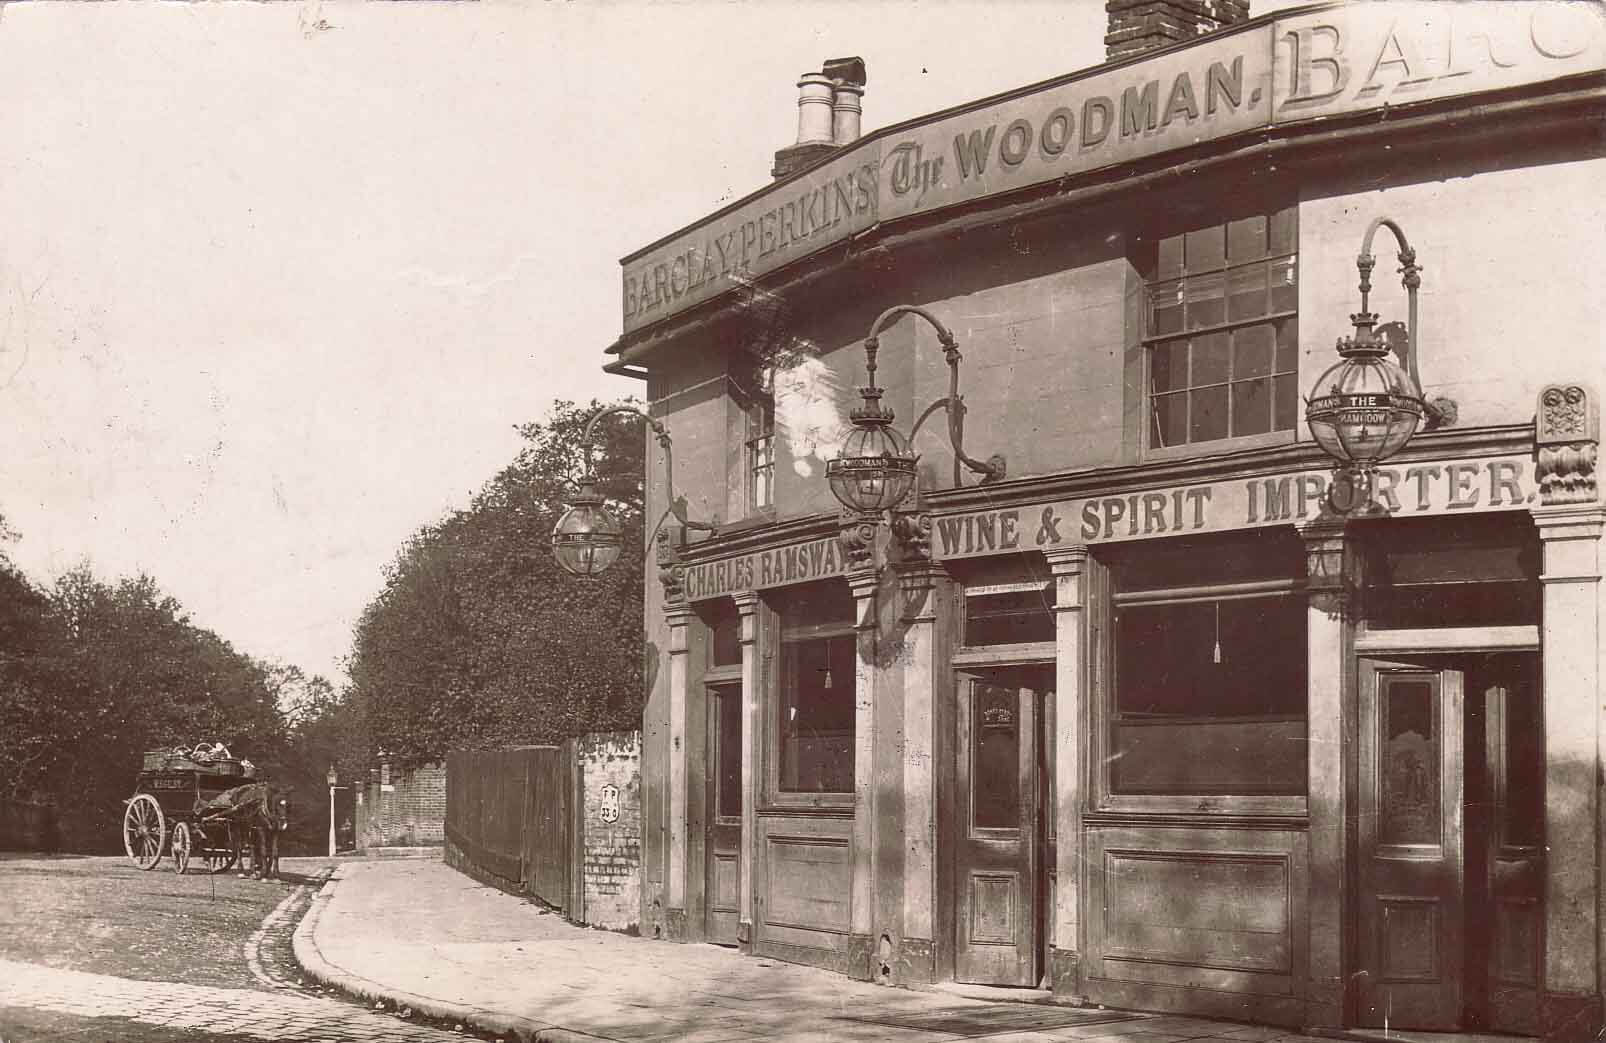 The Woodman, Archway Road,1880s